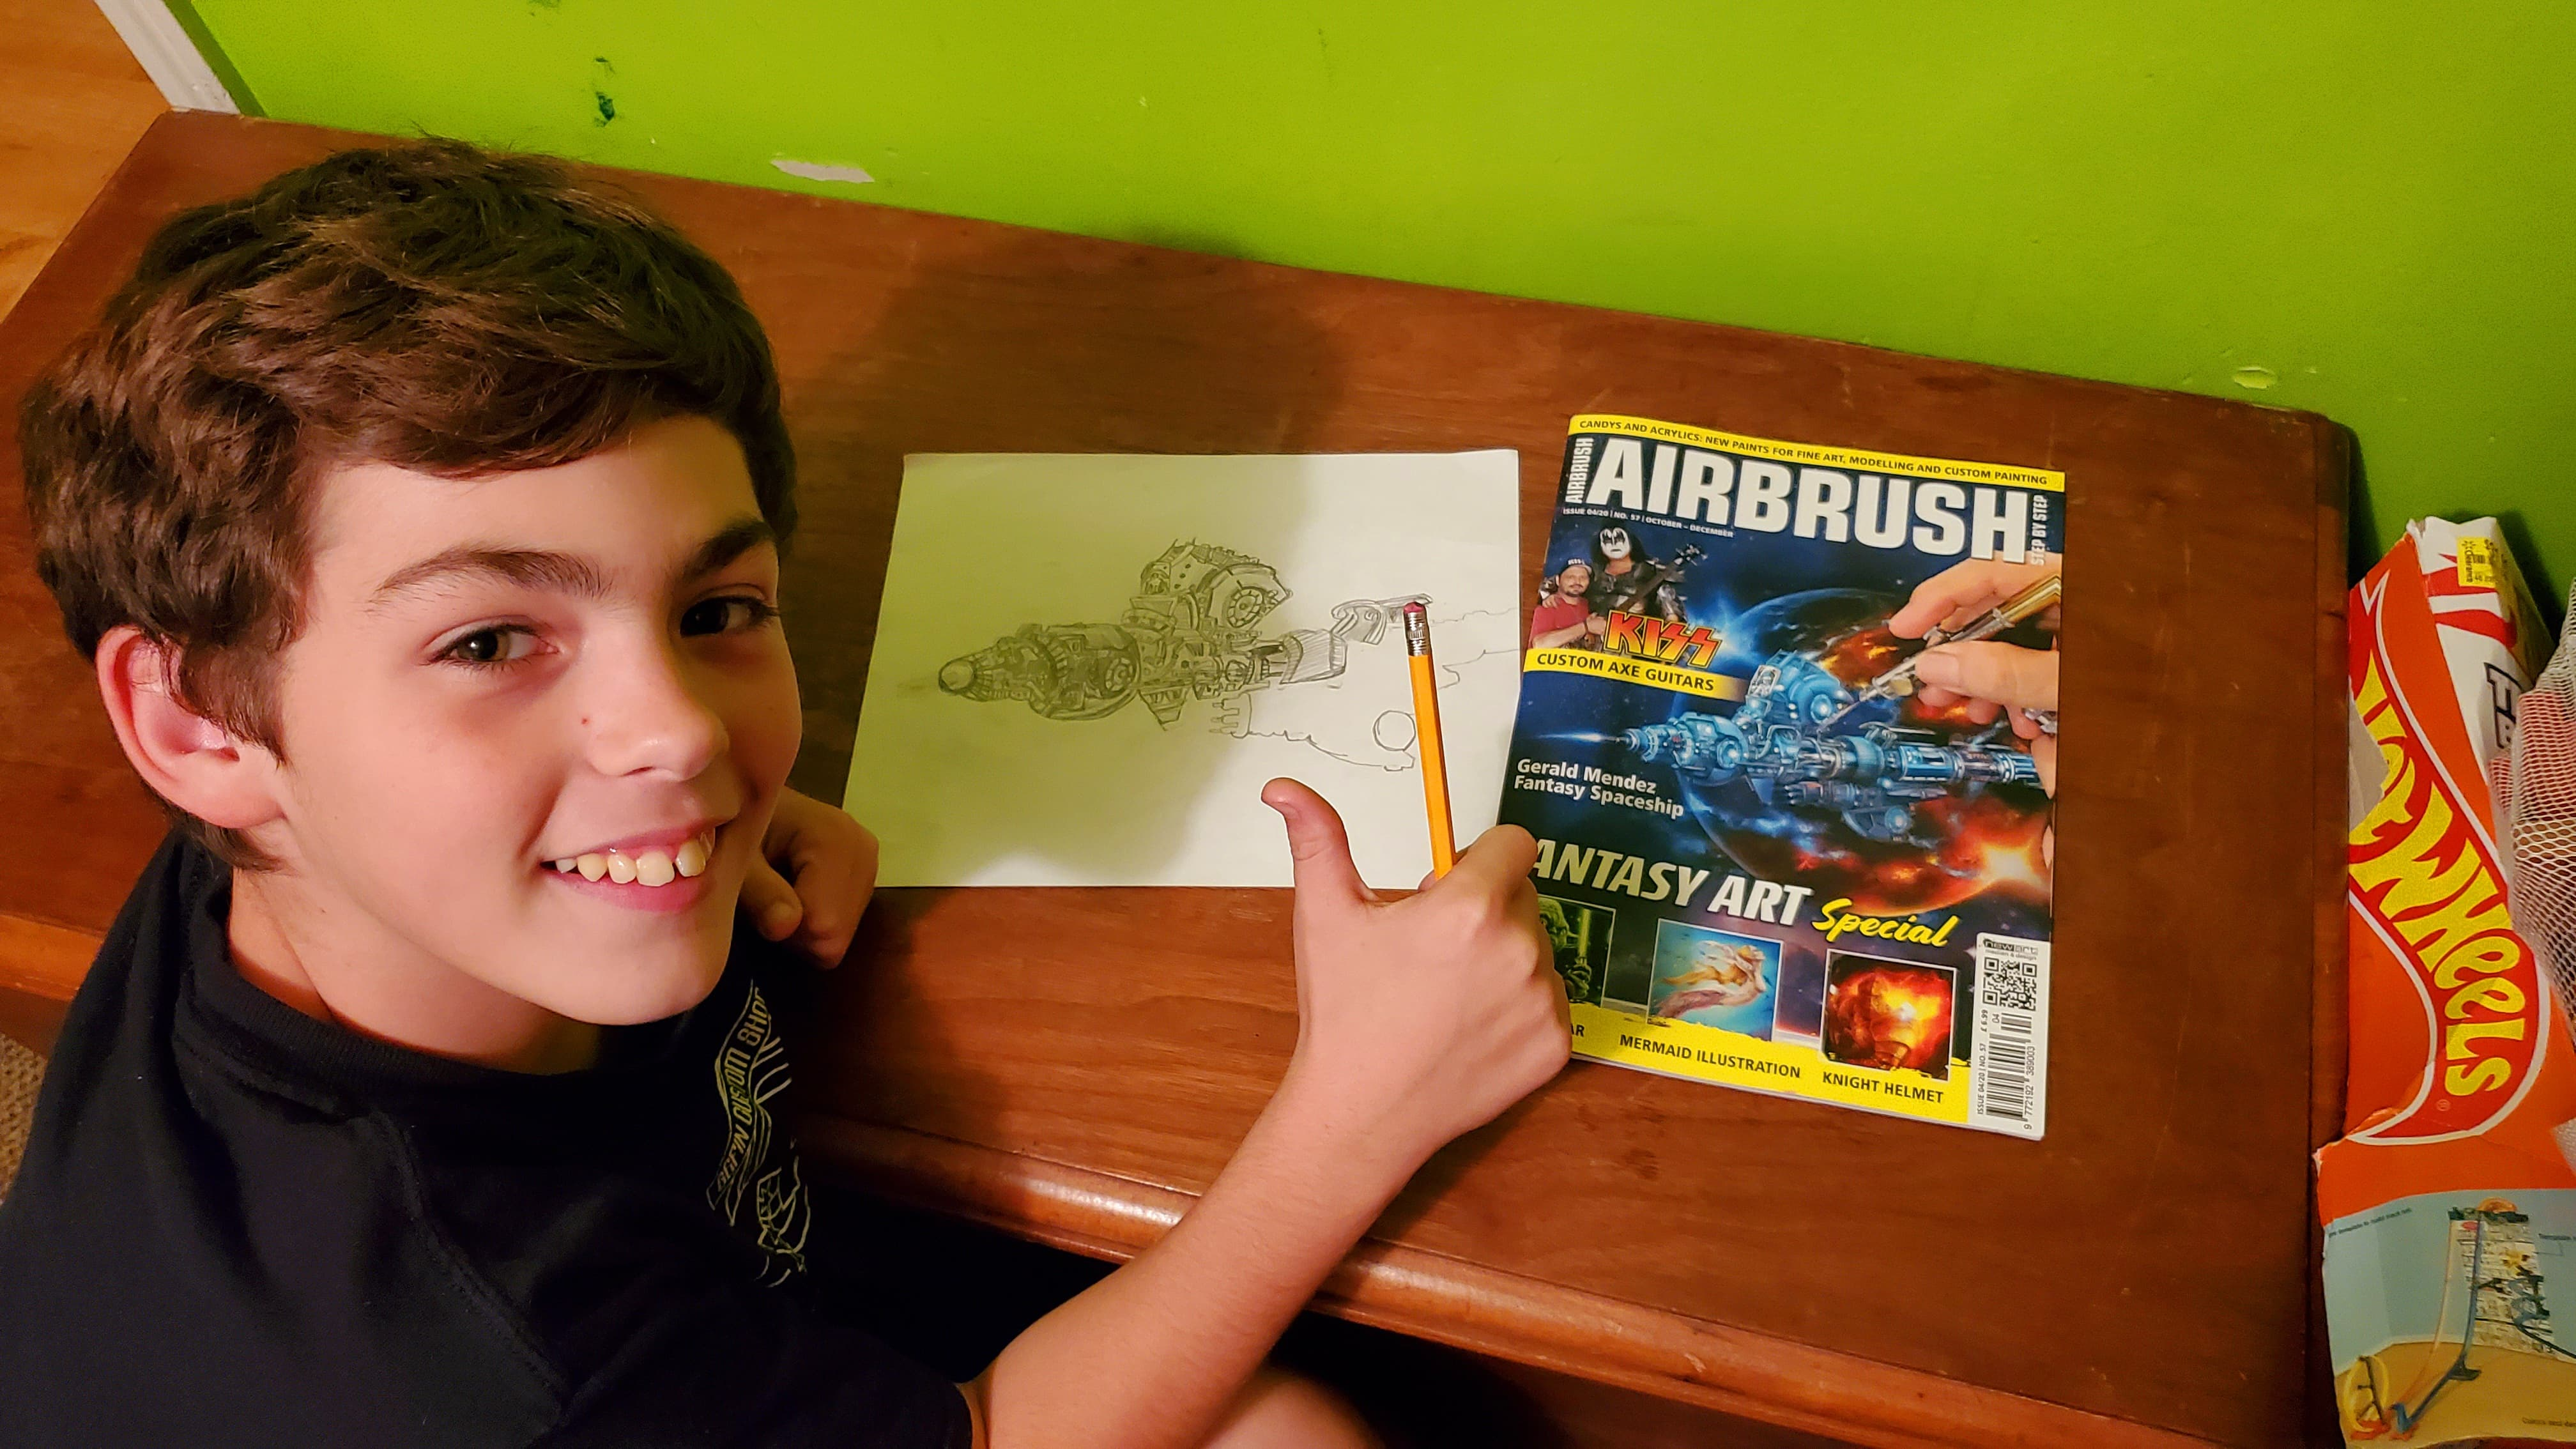 Airbrush Step by Step magazine: Inspiration even for the little ones